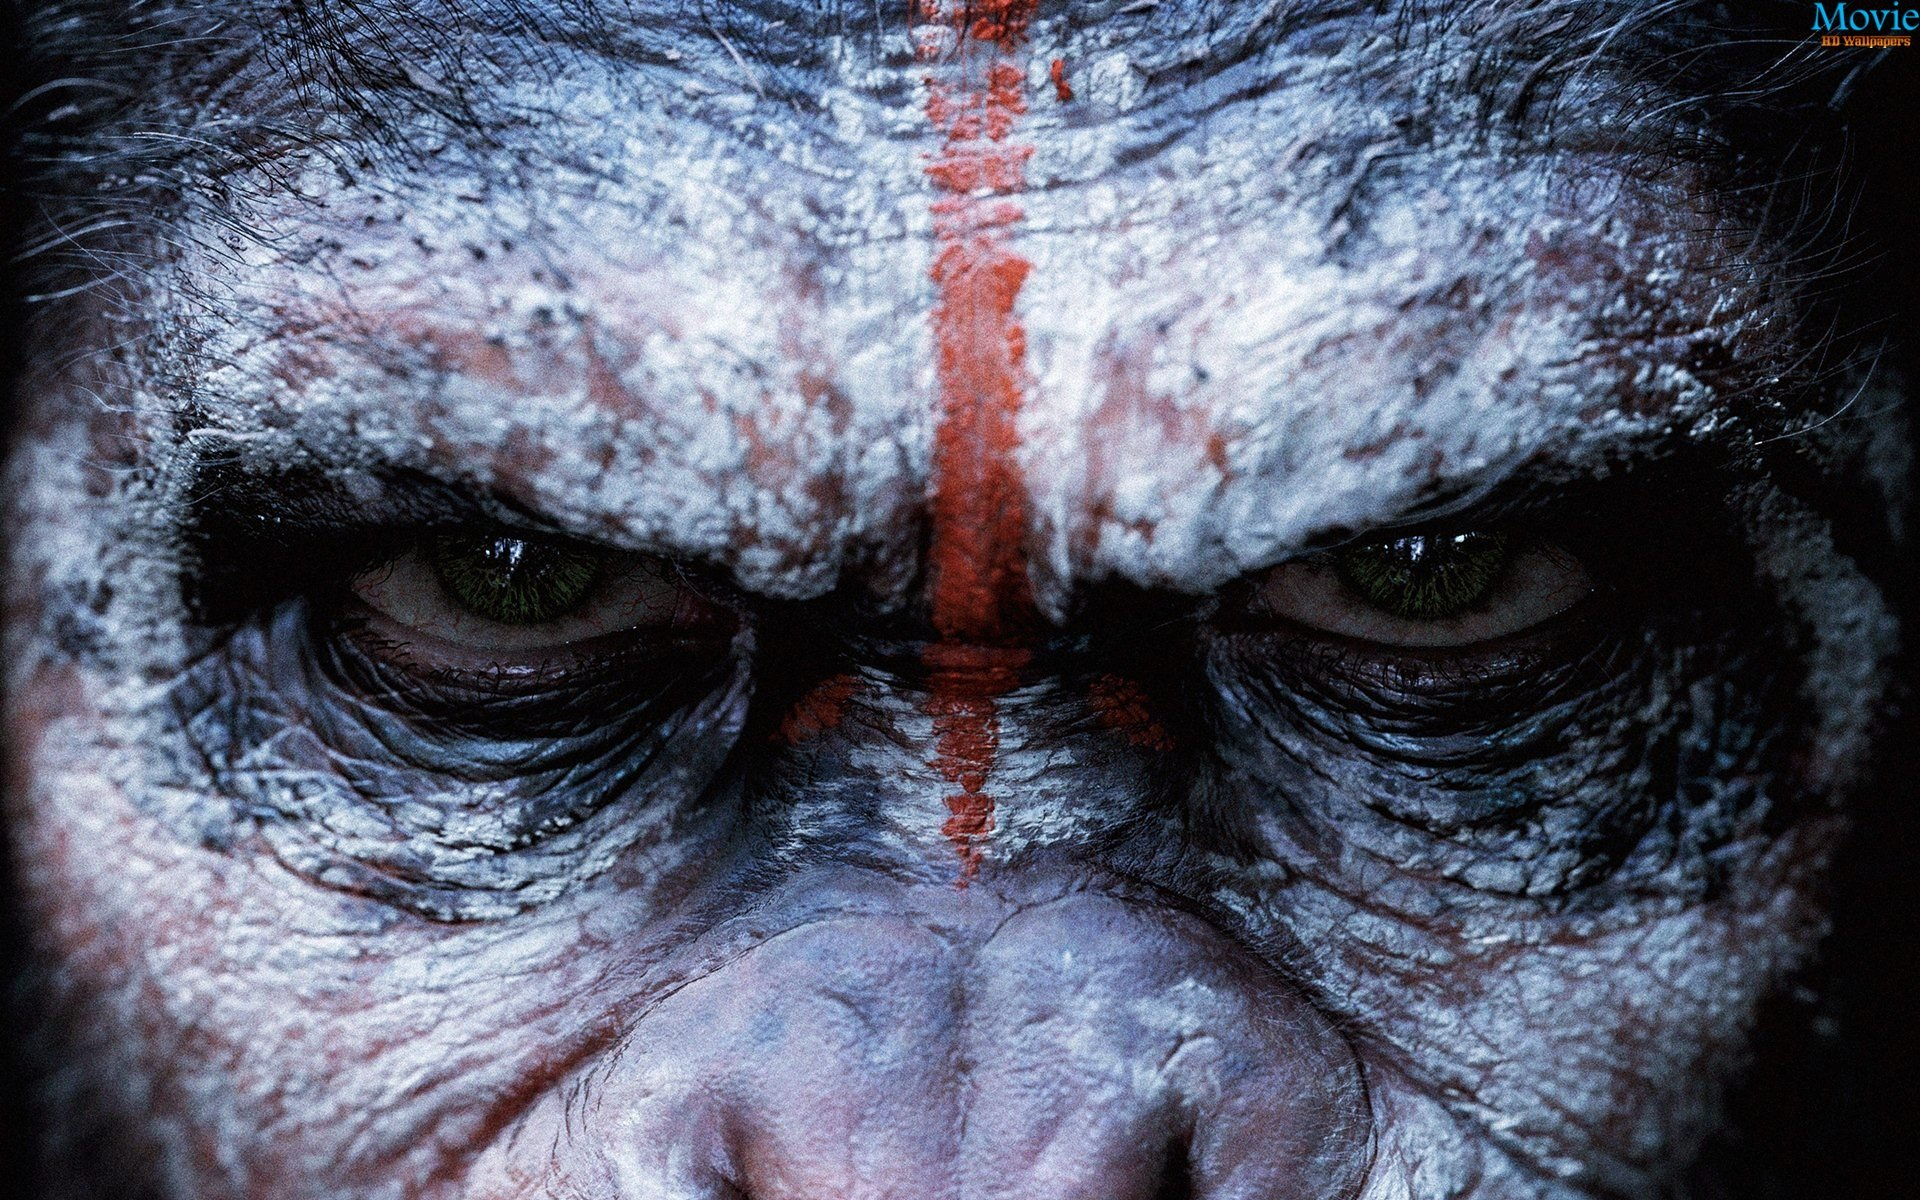 Dawn of the planet of the apes 2014 movie hd wallpapers - Caesar hd wallpaper ...